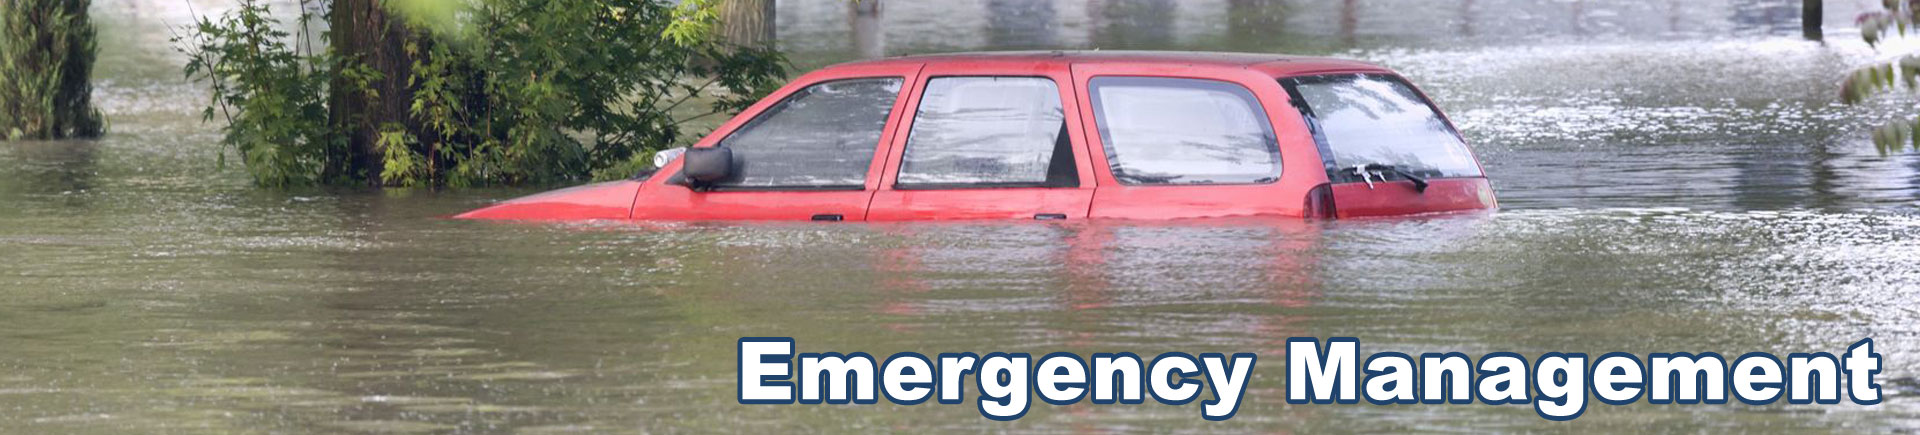 Lincoln County Emergency Management Flooding Links